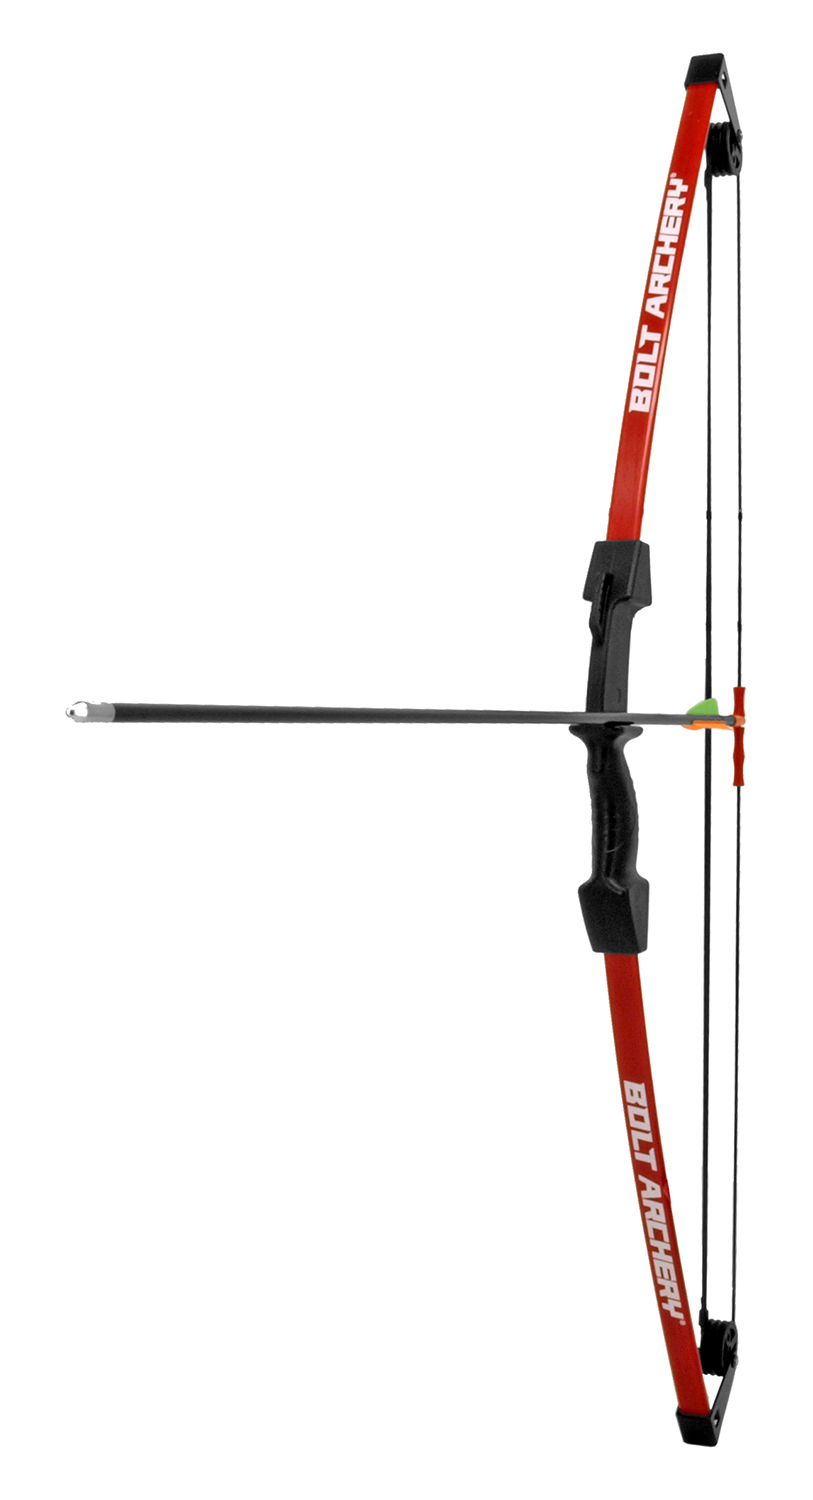 The Tracker Youth Compound Bow and Arrow Set - Bolt Archery